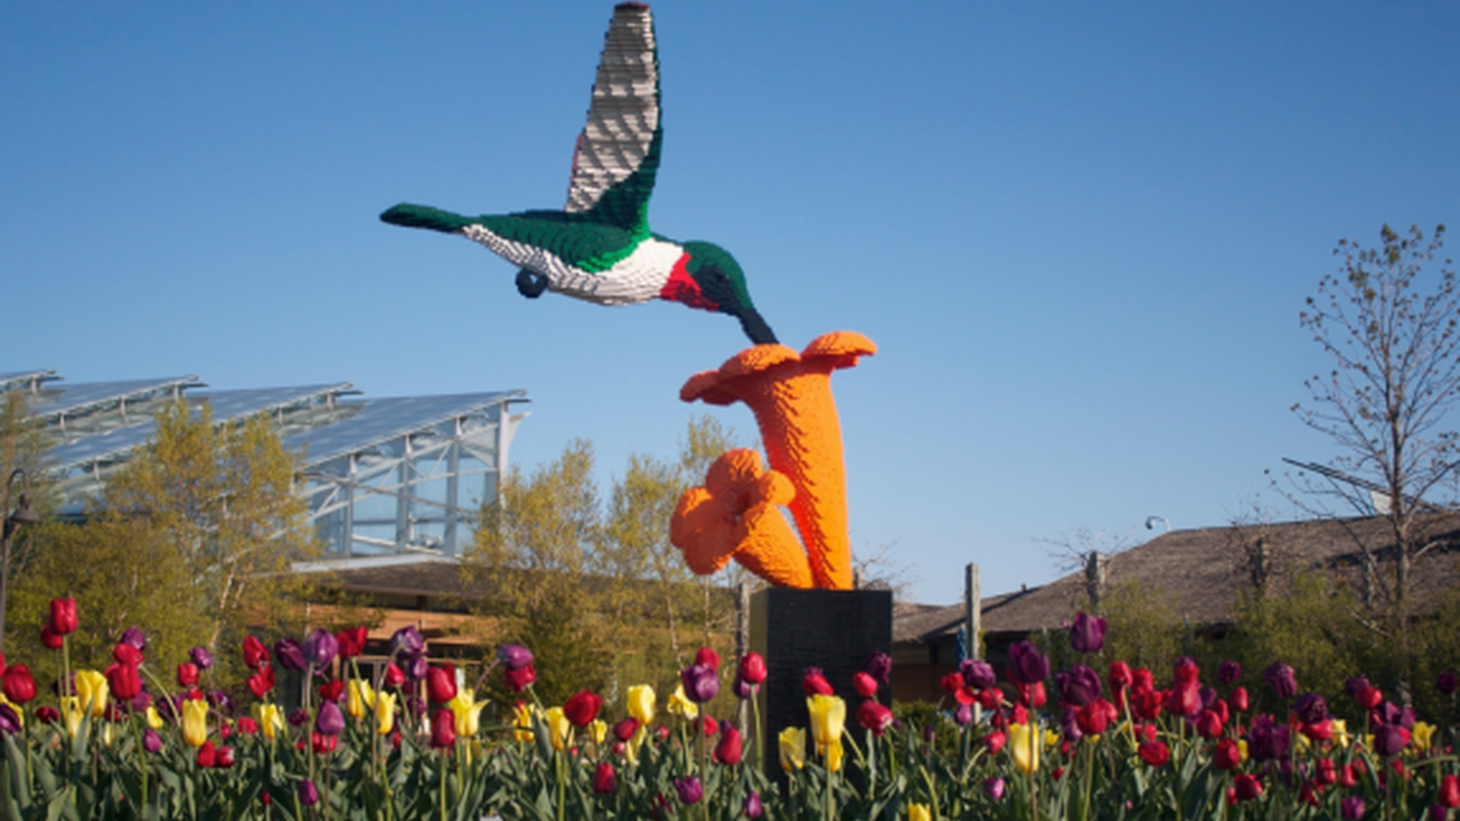 A hummingbird and flower made of Lego bricks by Sean Kenney.